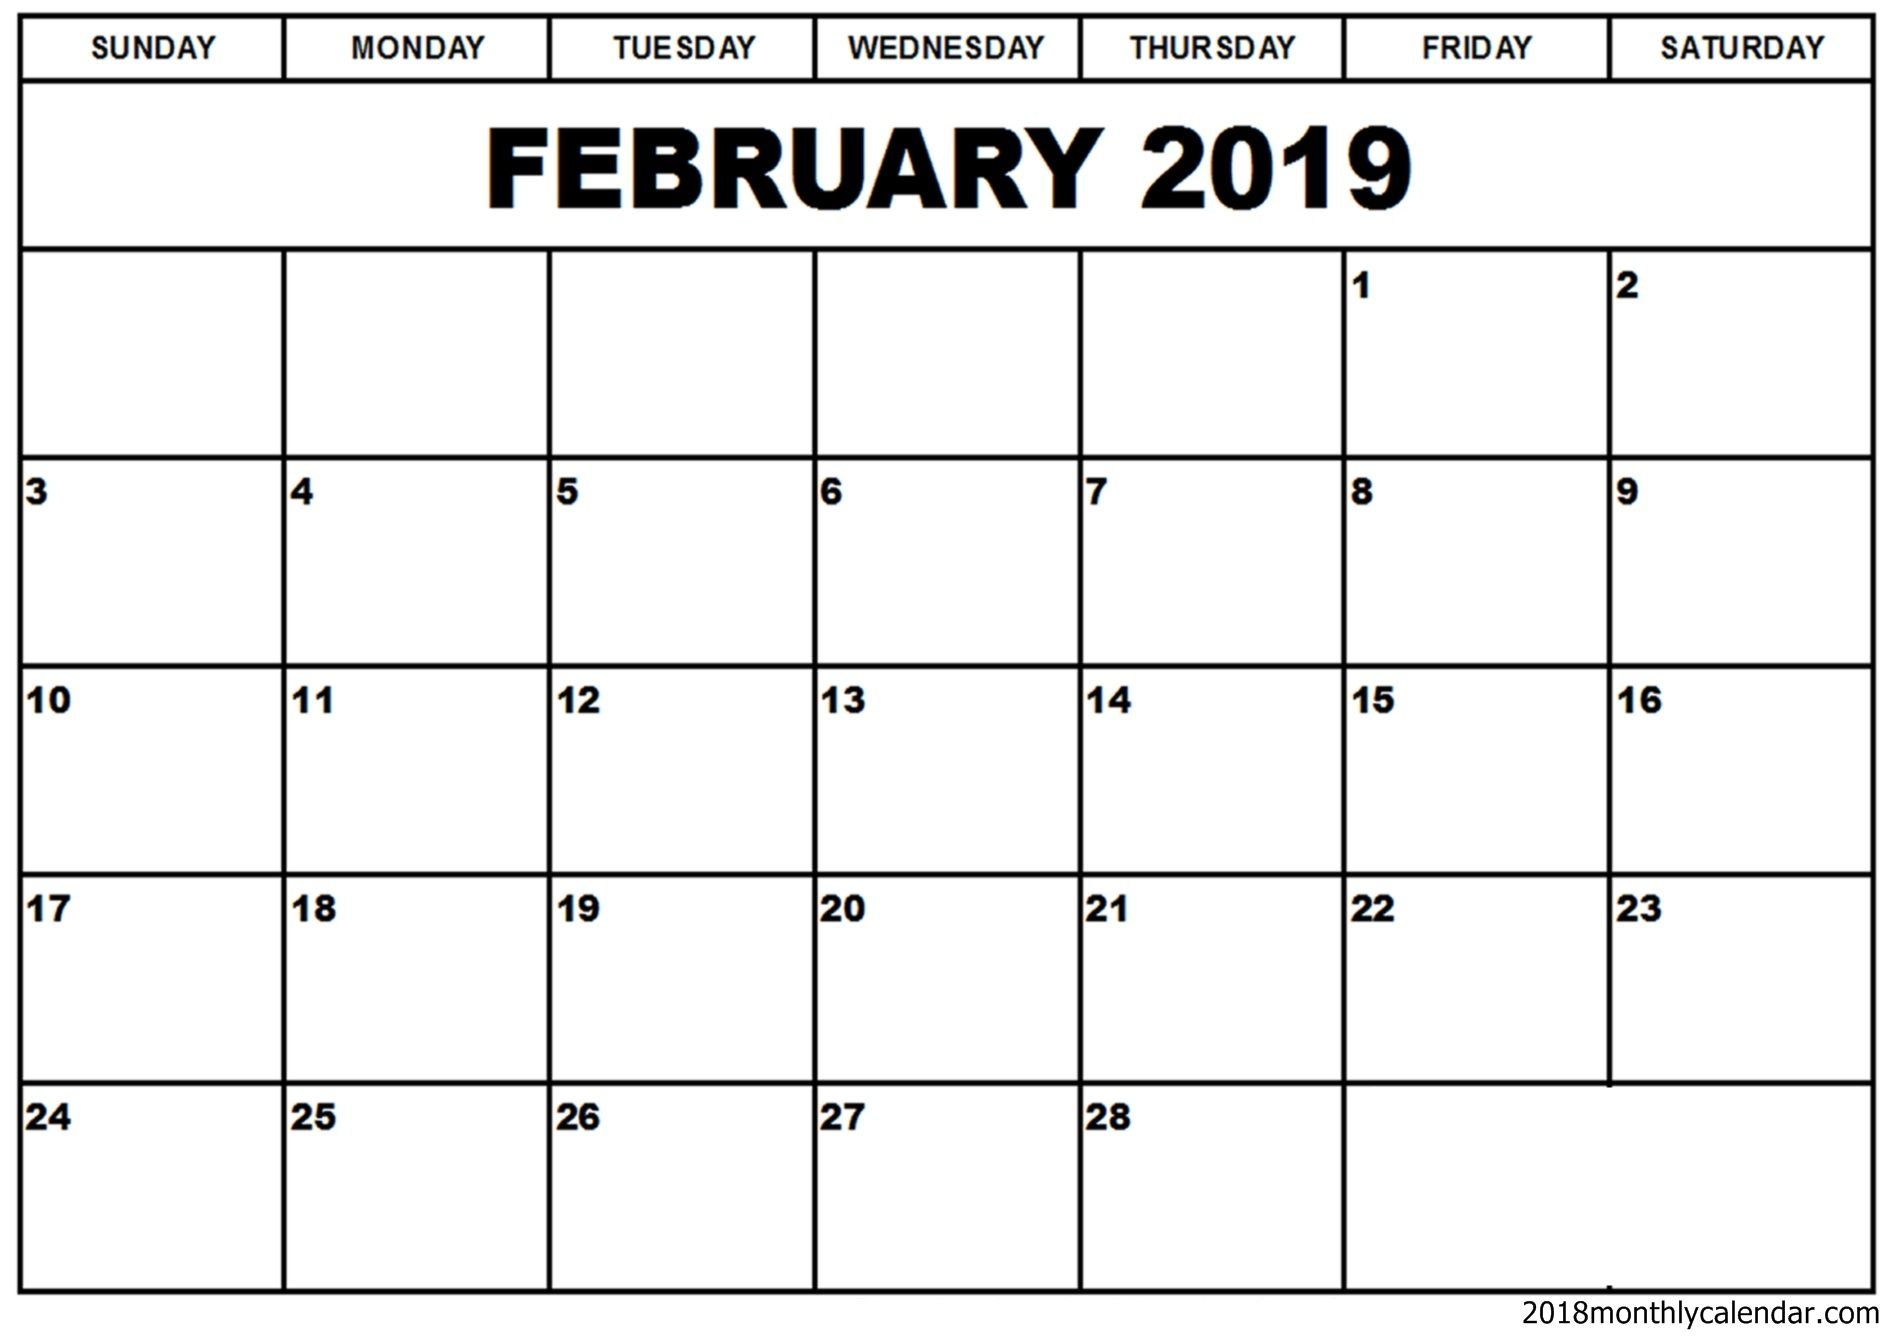 Free 2019 Calendar Template Word February 2019 Calendar Word Template | Free Printable Monthly